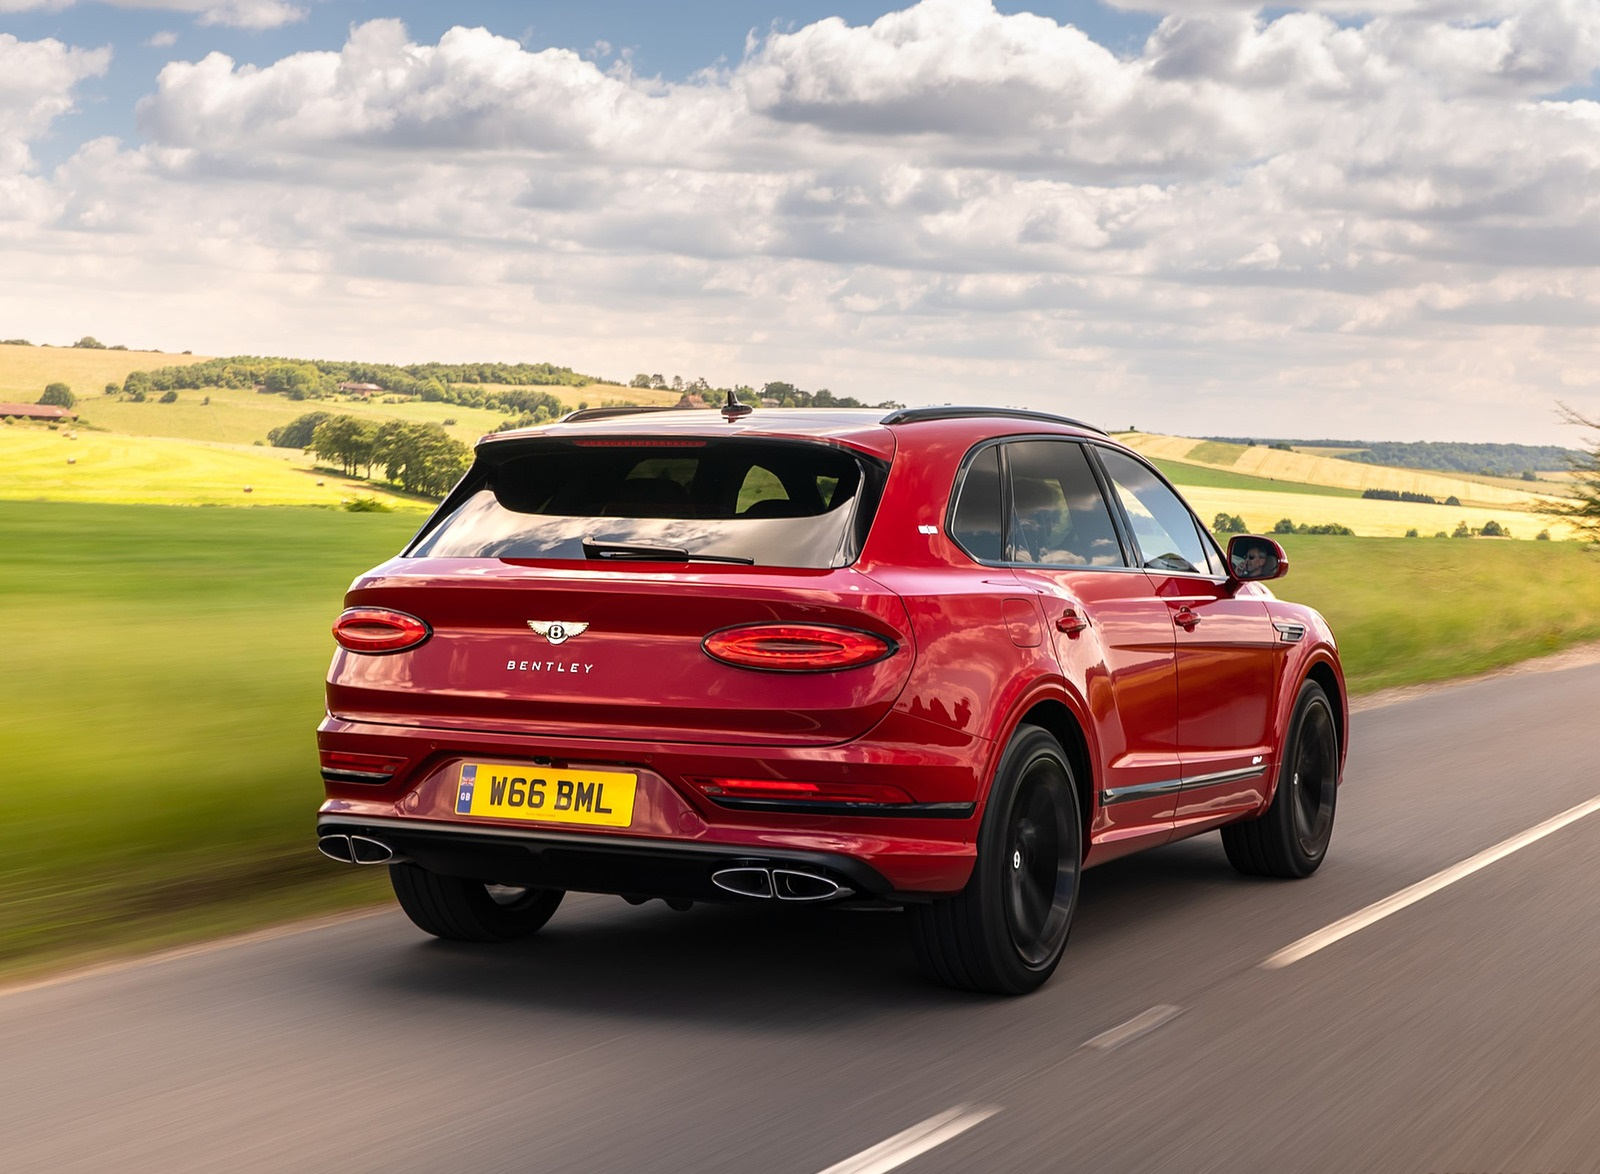 2021 Bentley Bentayga Plug-In Hybrid First Edition First Edition (Color: Dragon Red) Rear Three-Quarter Wallpapers (5)